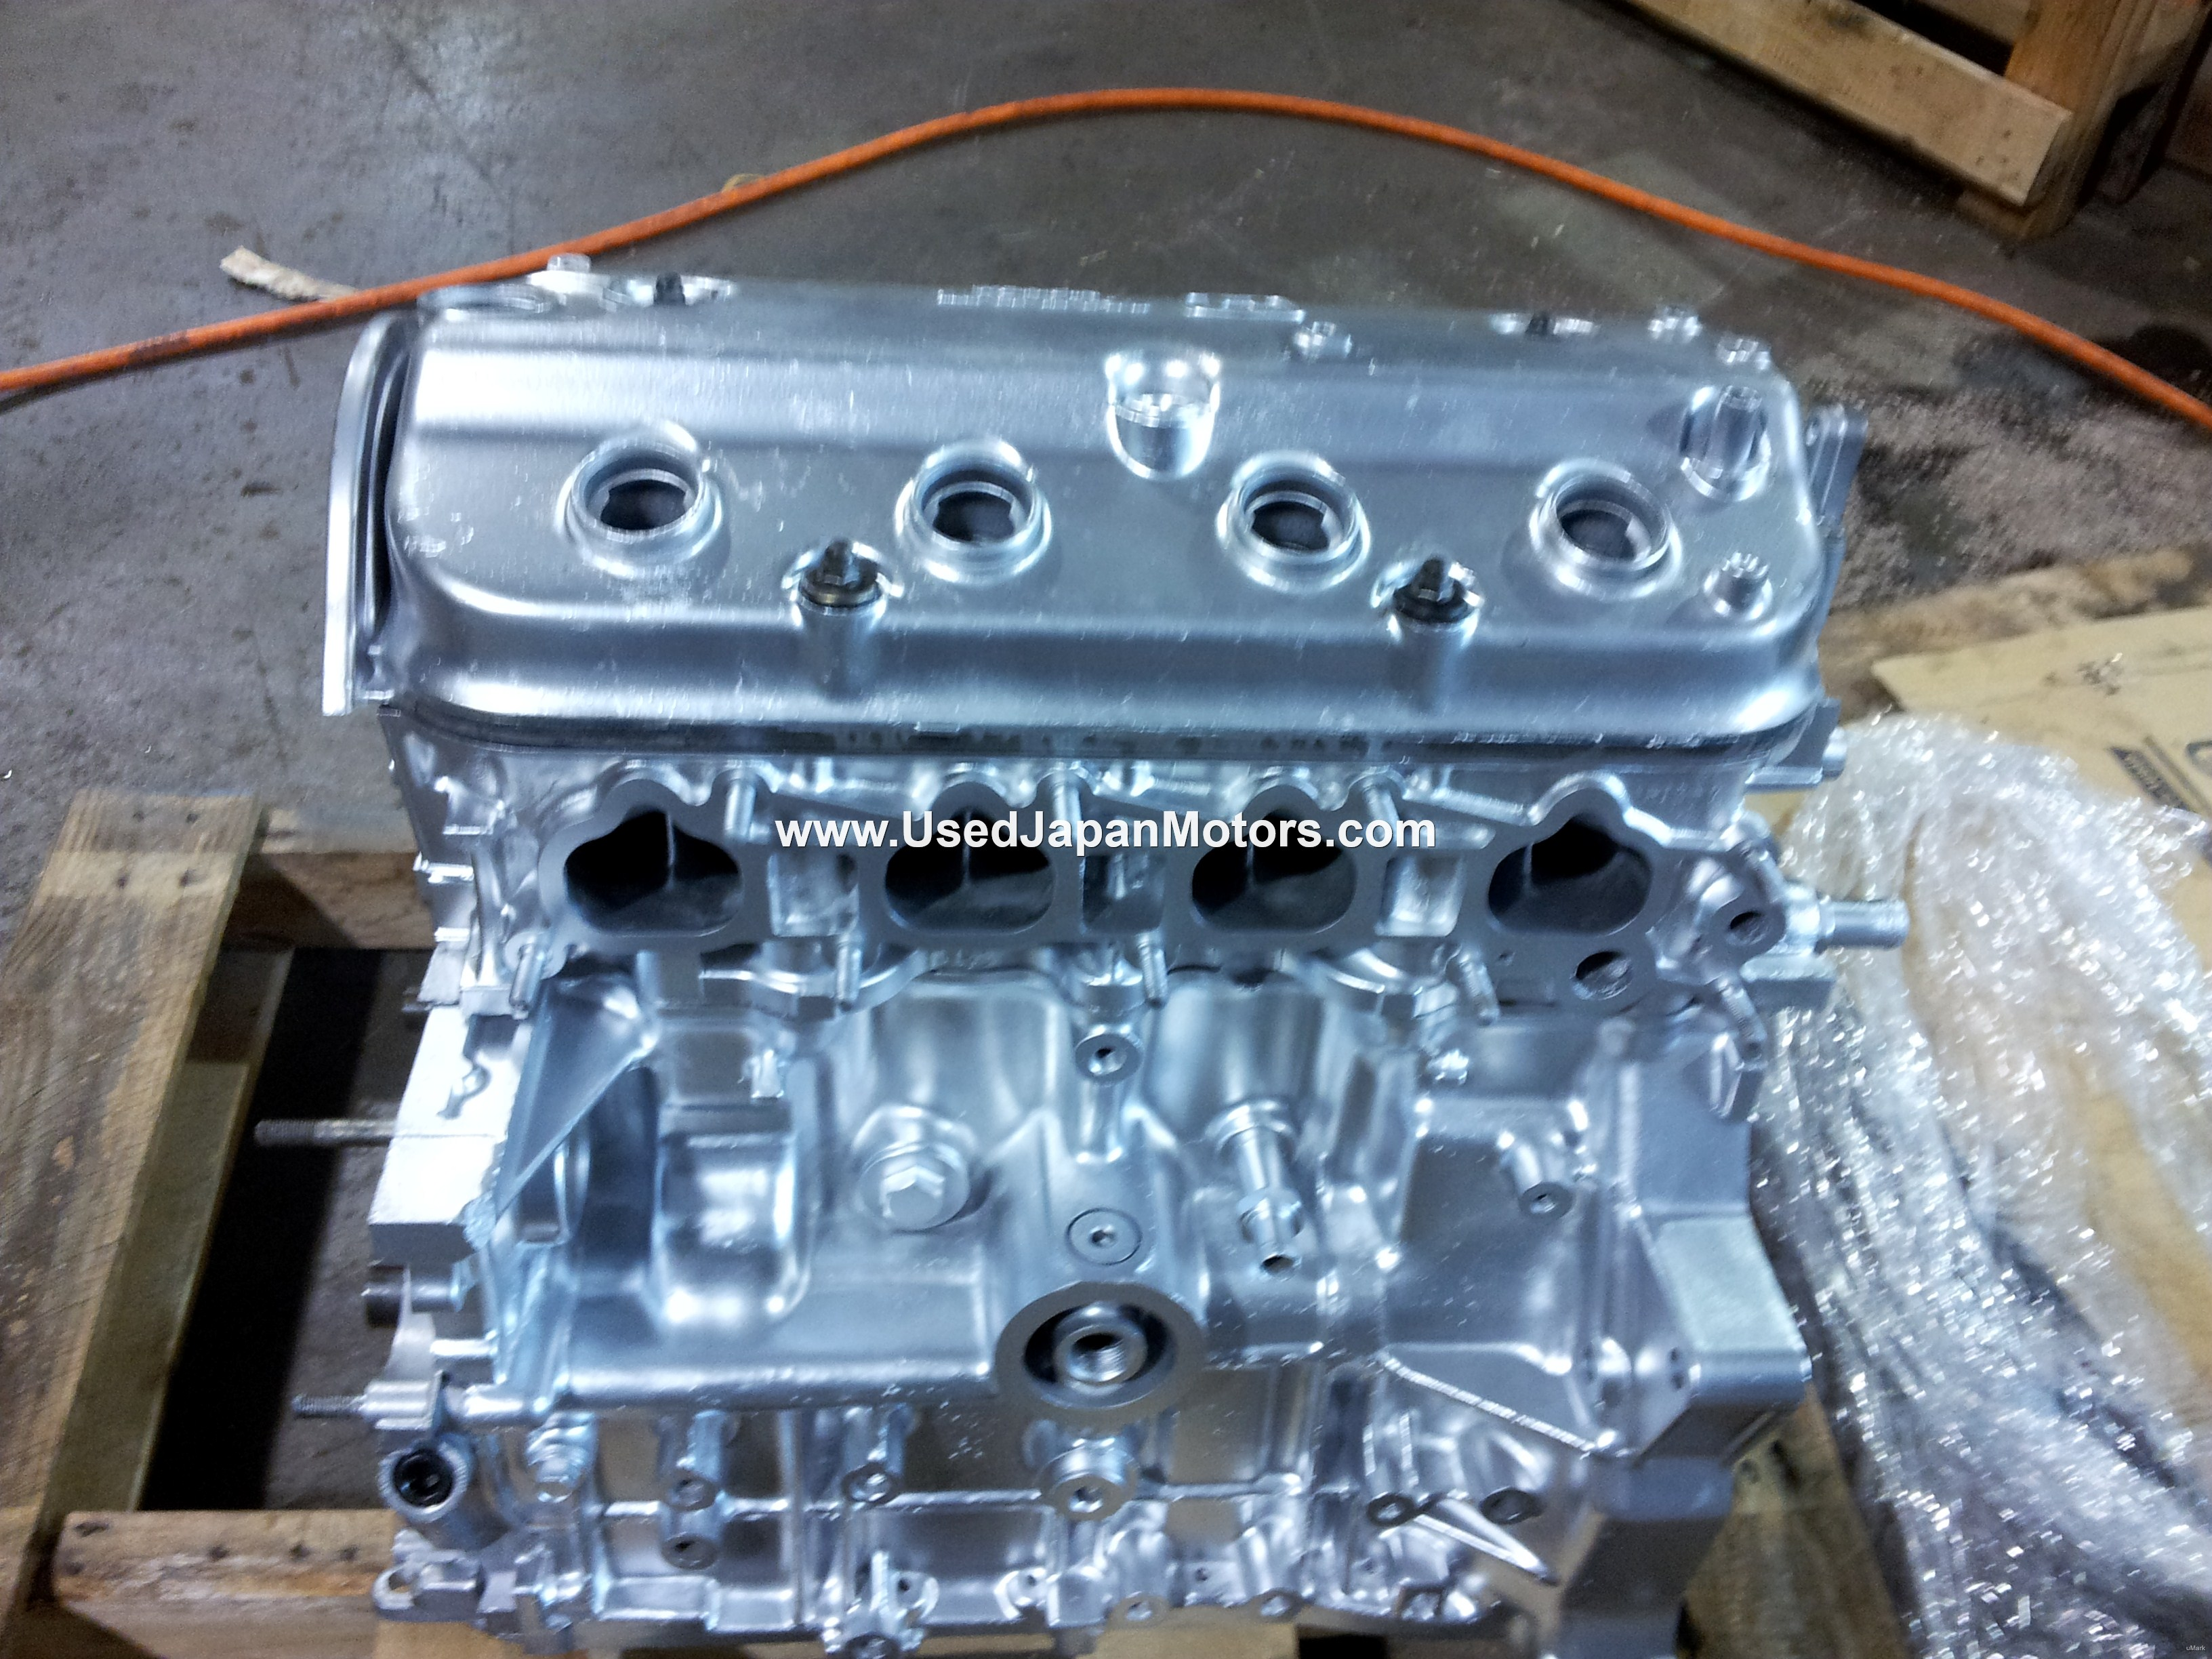 Low Mileage Honda Accord Engines From Japan We Also Rebuild Accord Motors